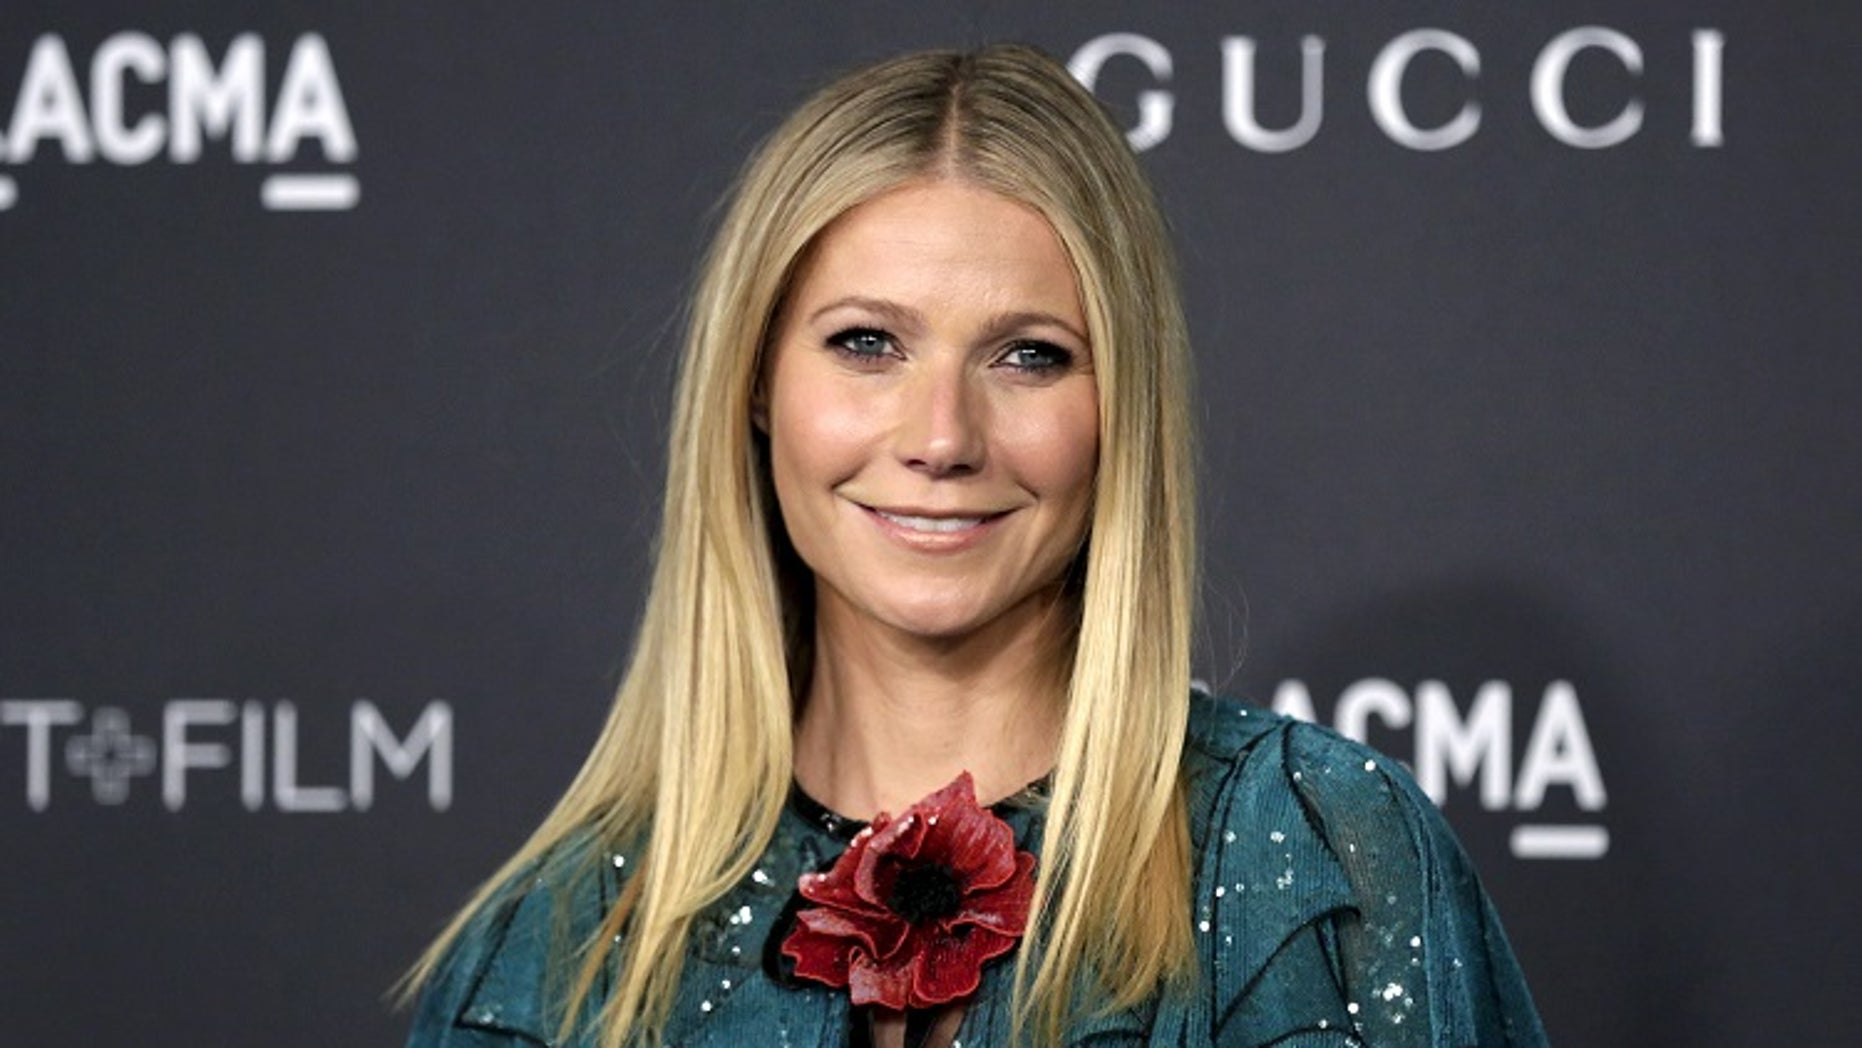 Paltrow gwyneth totally gets common woman